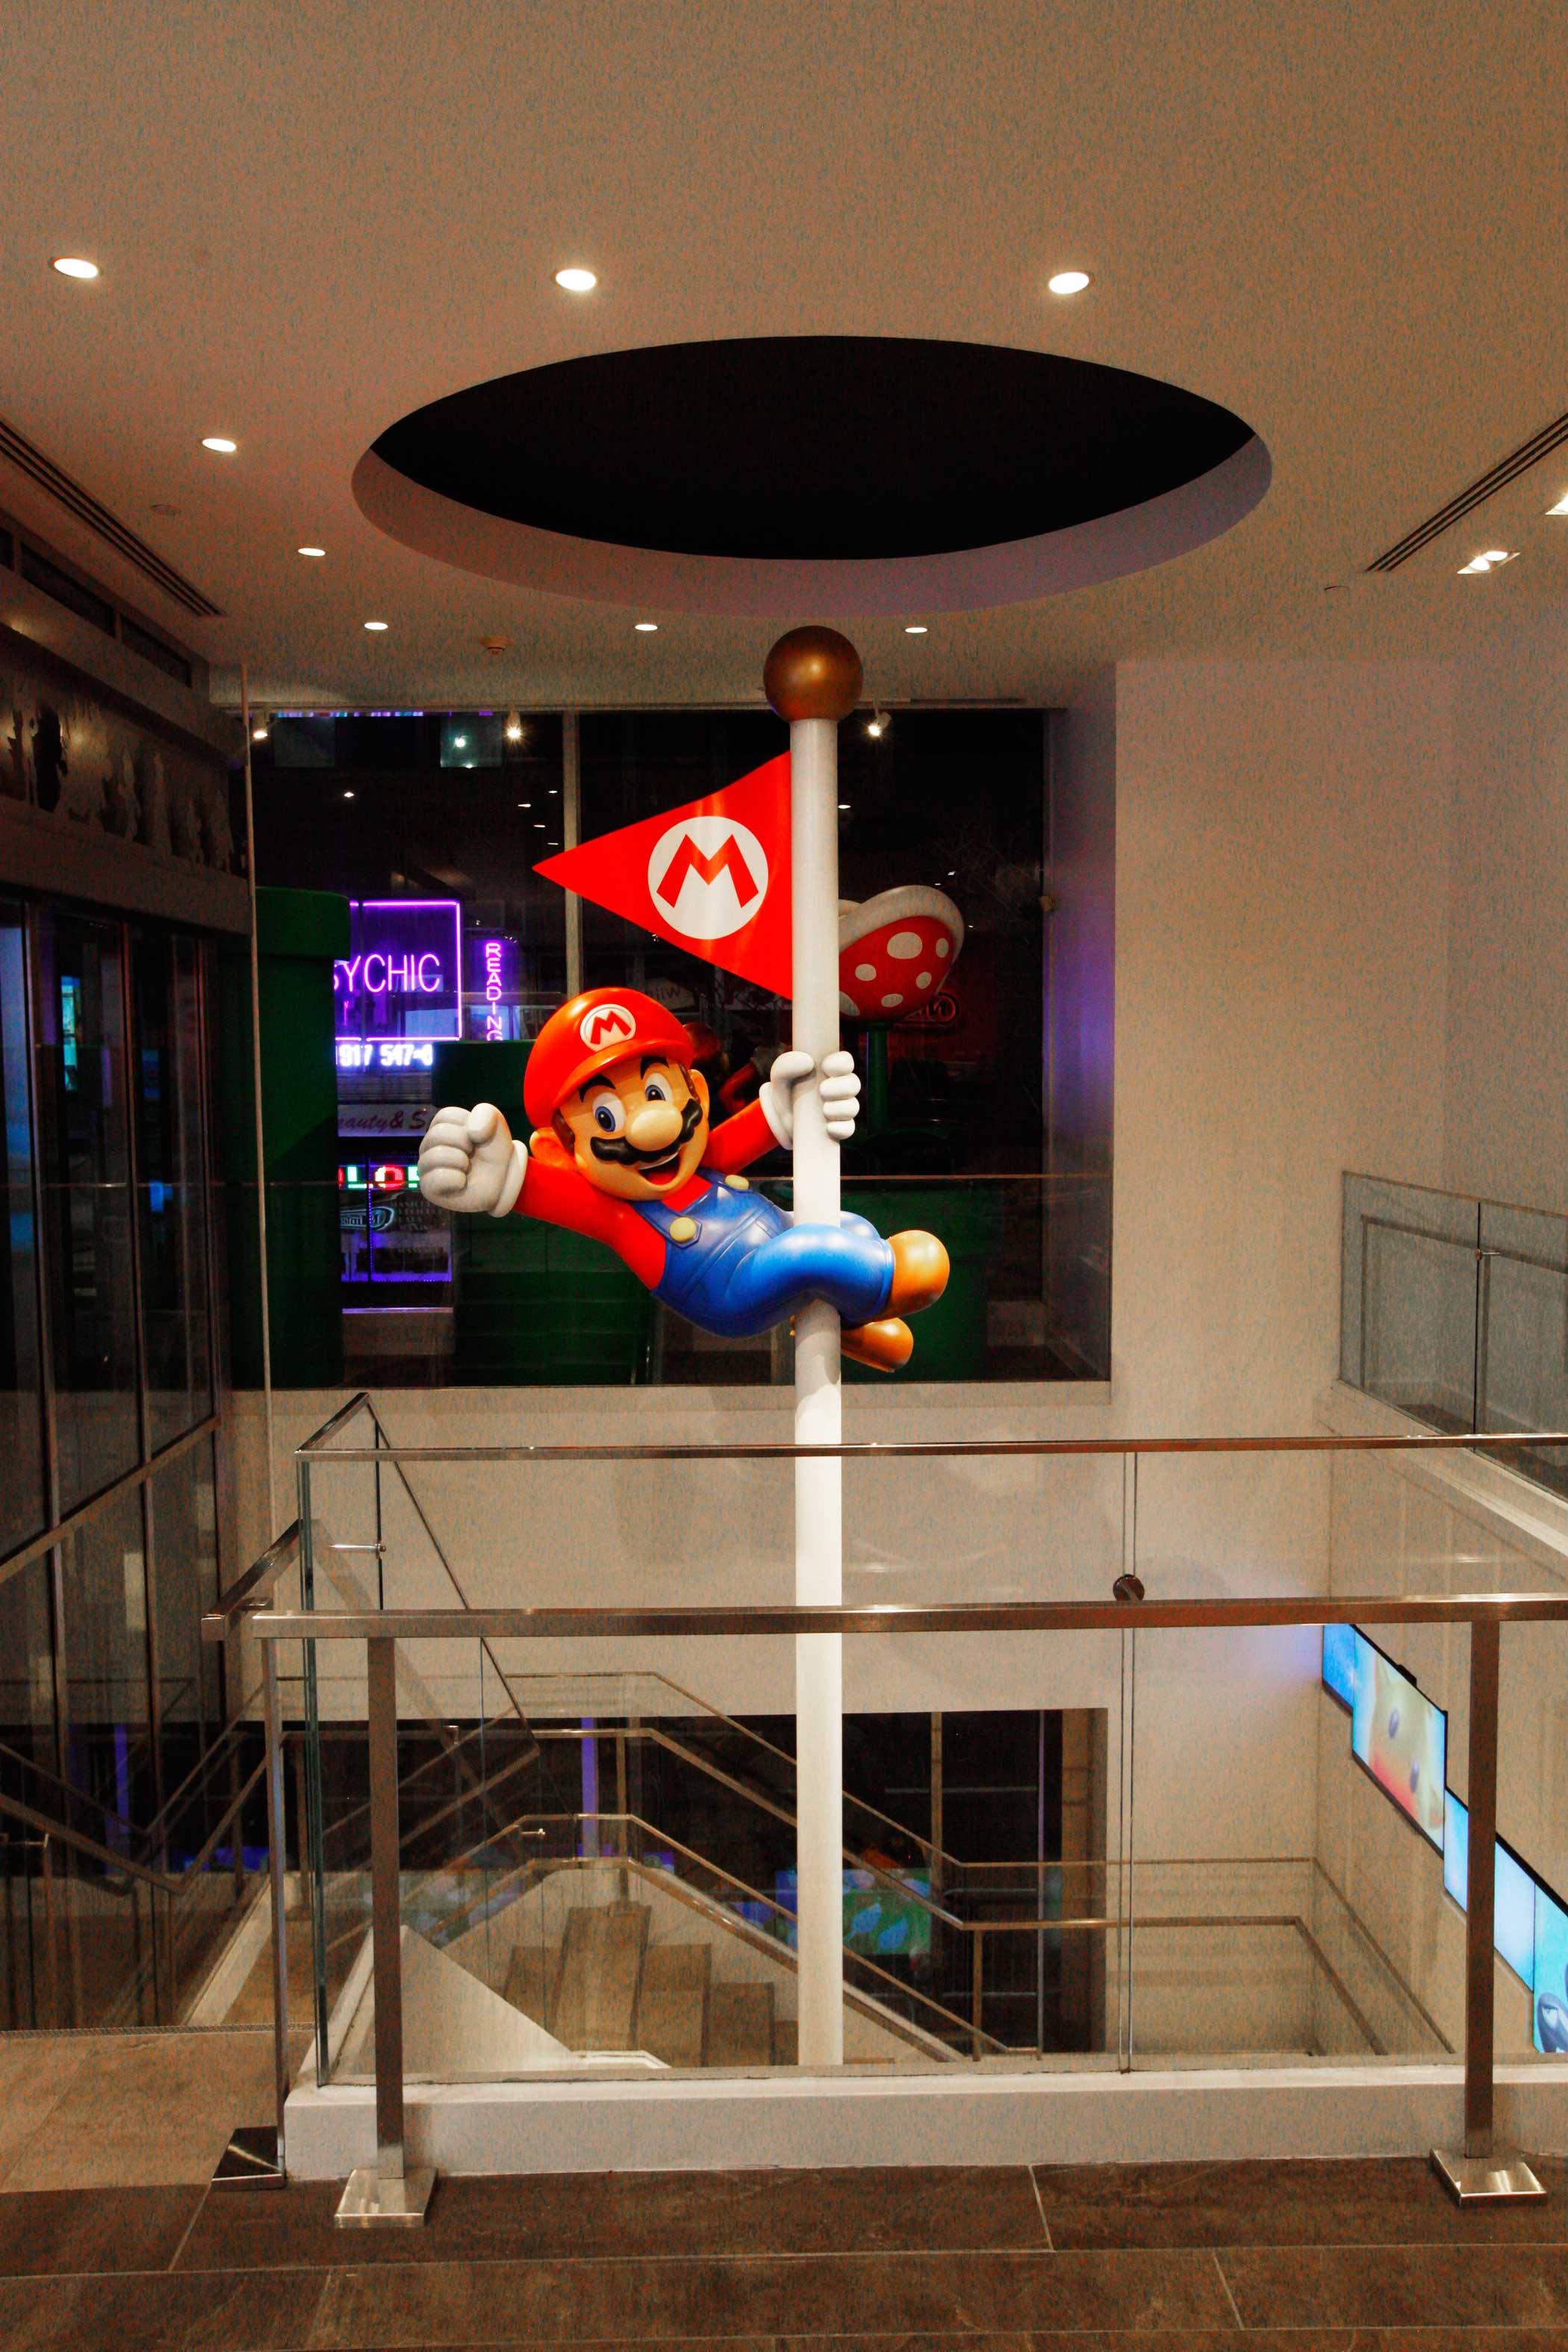 A cast of Mario can be seen sliding down a pole from the second to the first floor.